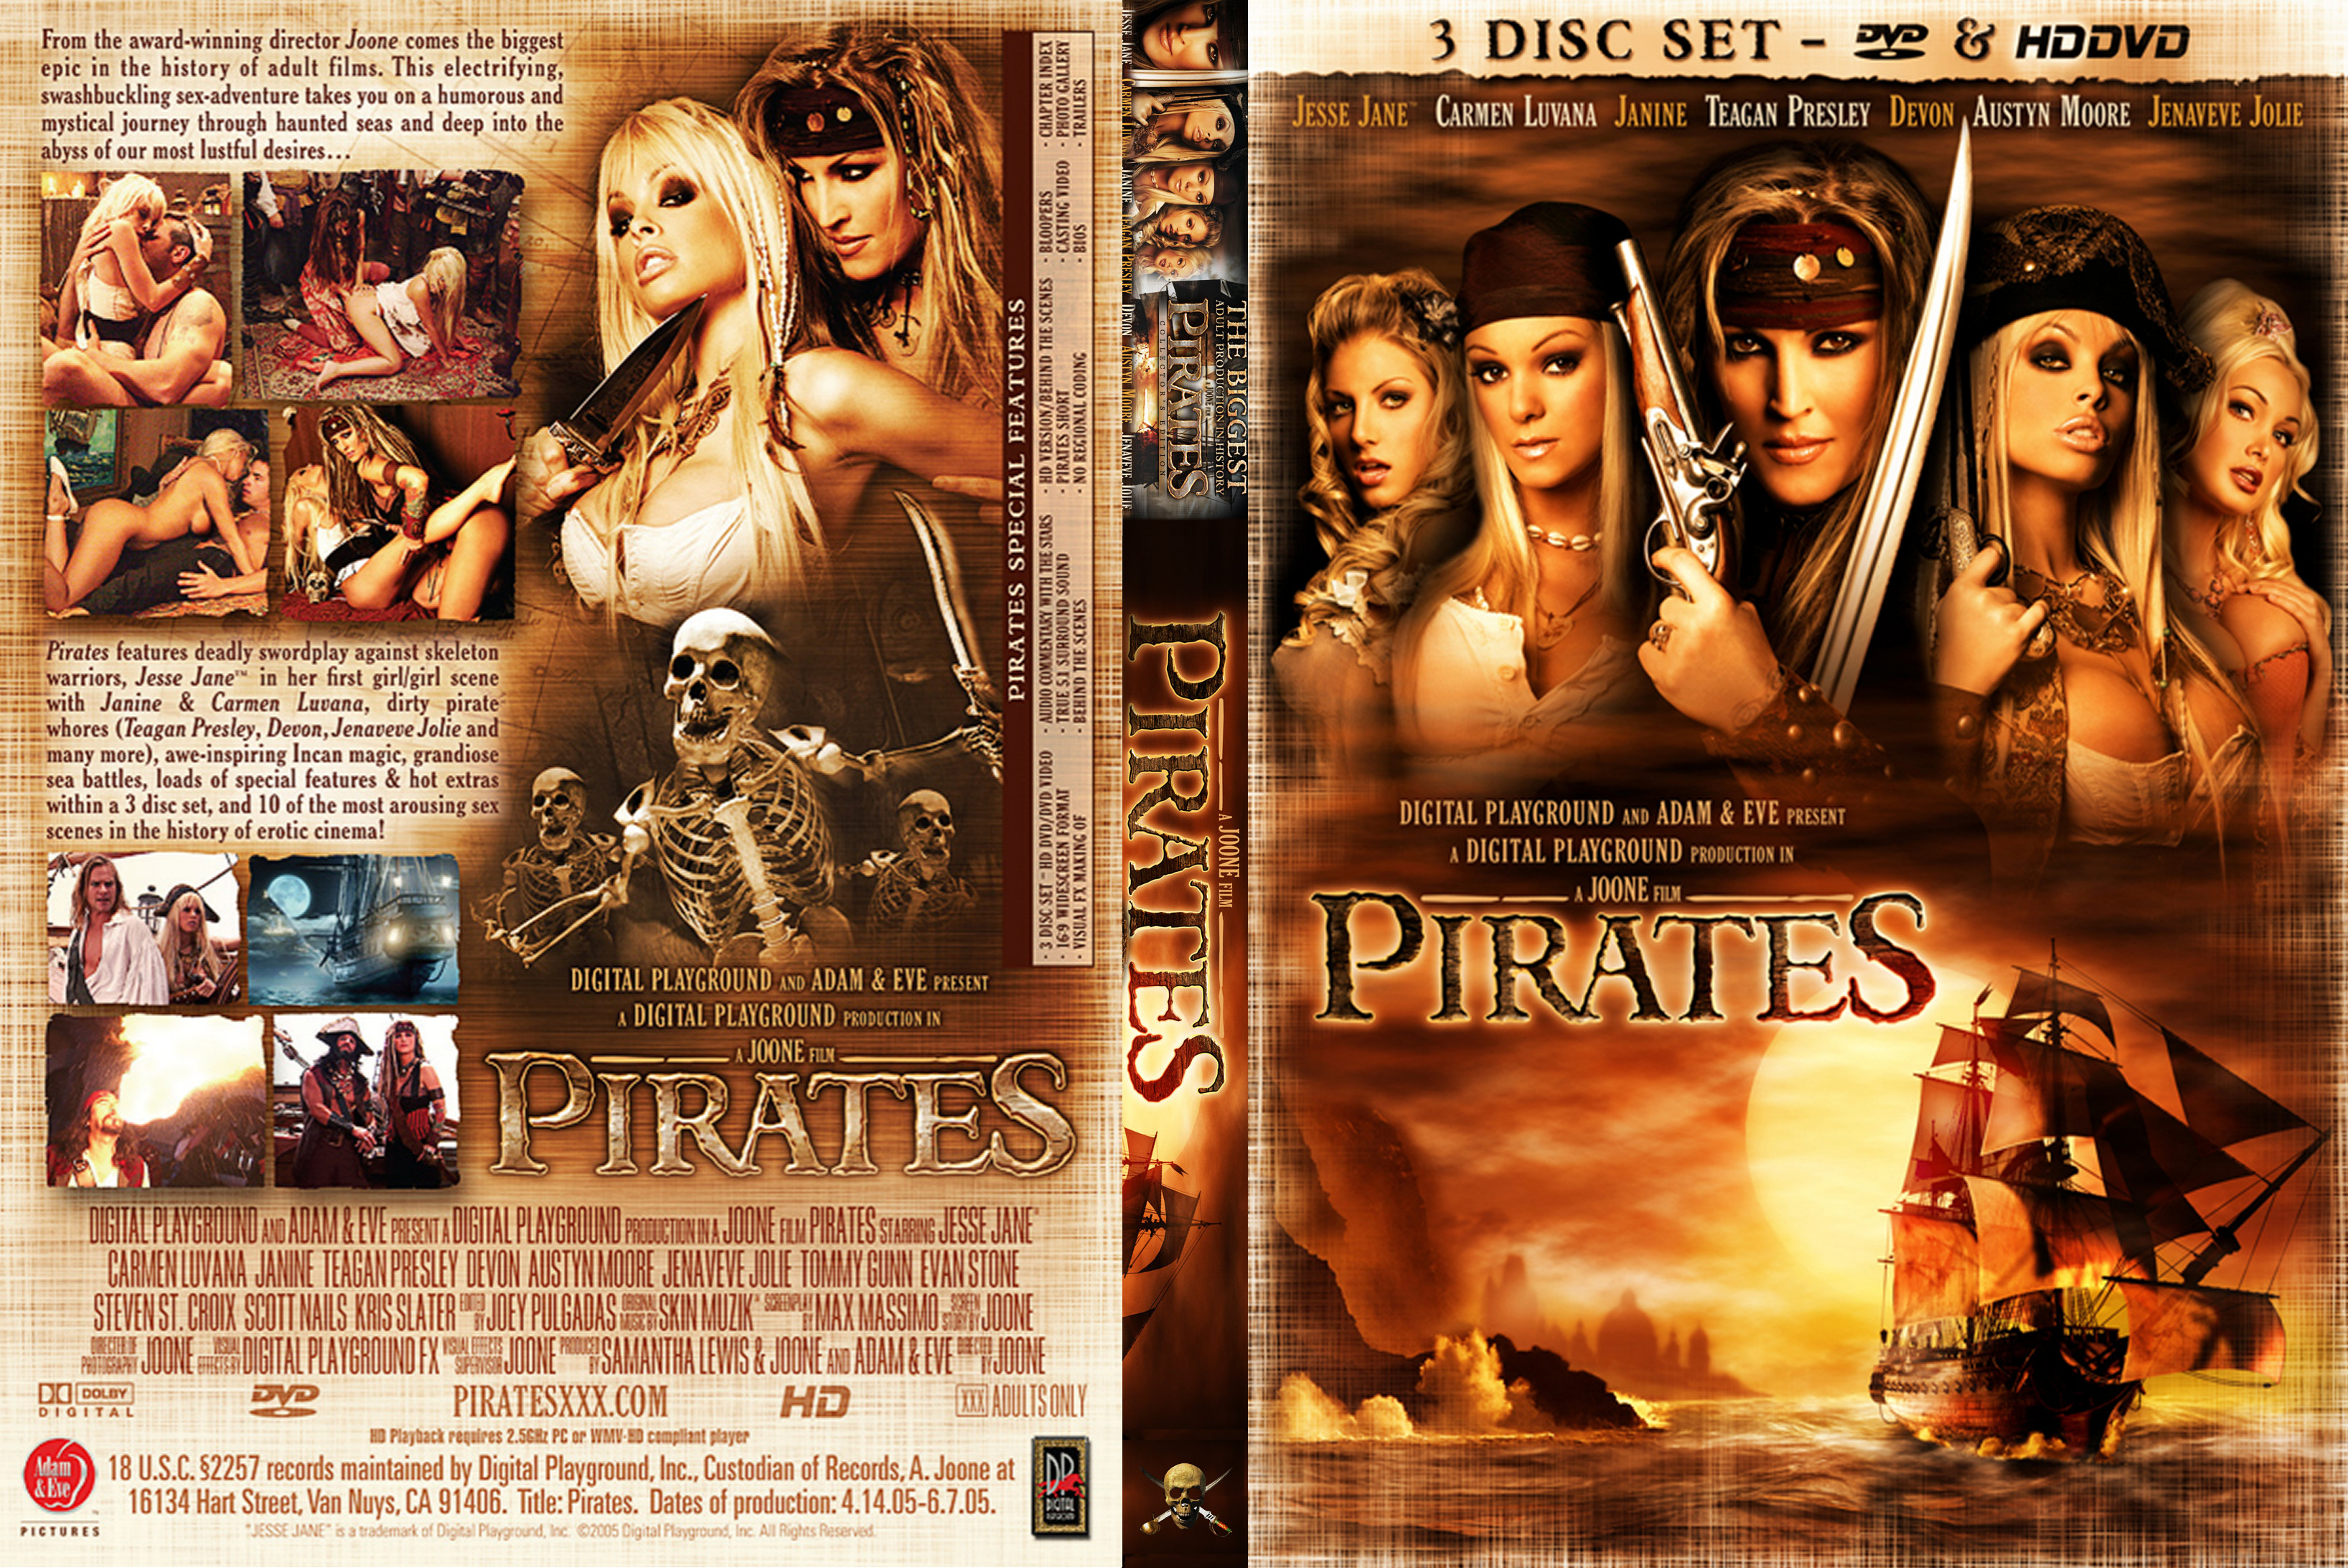 Pirates xxx movie sex scenes in 3gp nsfw scenes